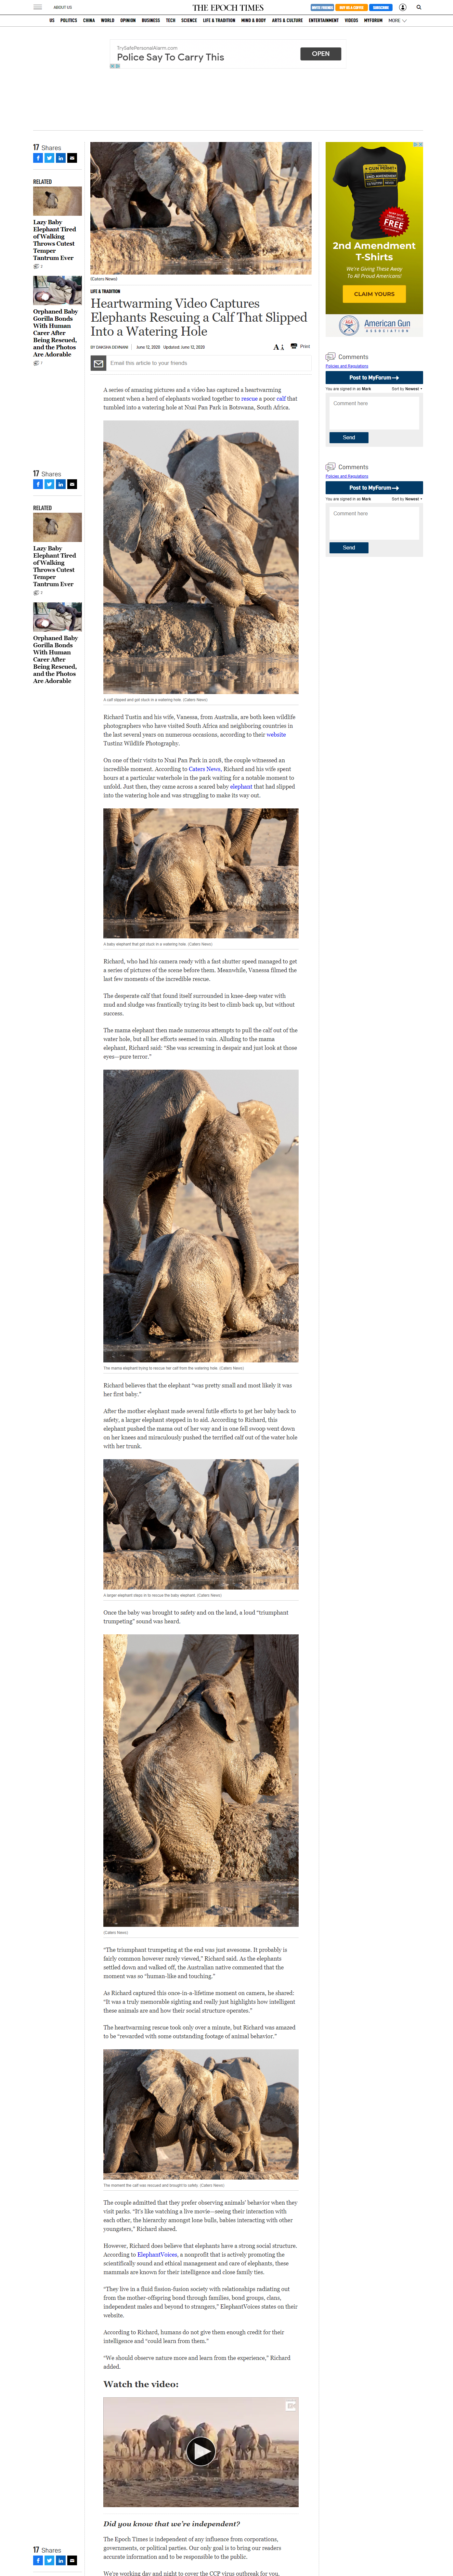 Epoch News, Elephant Save at water hole